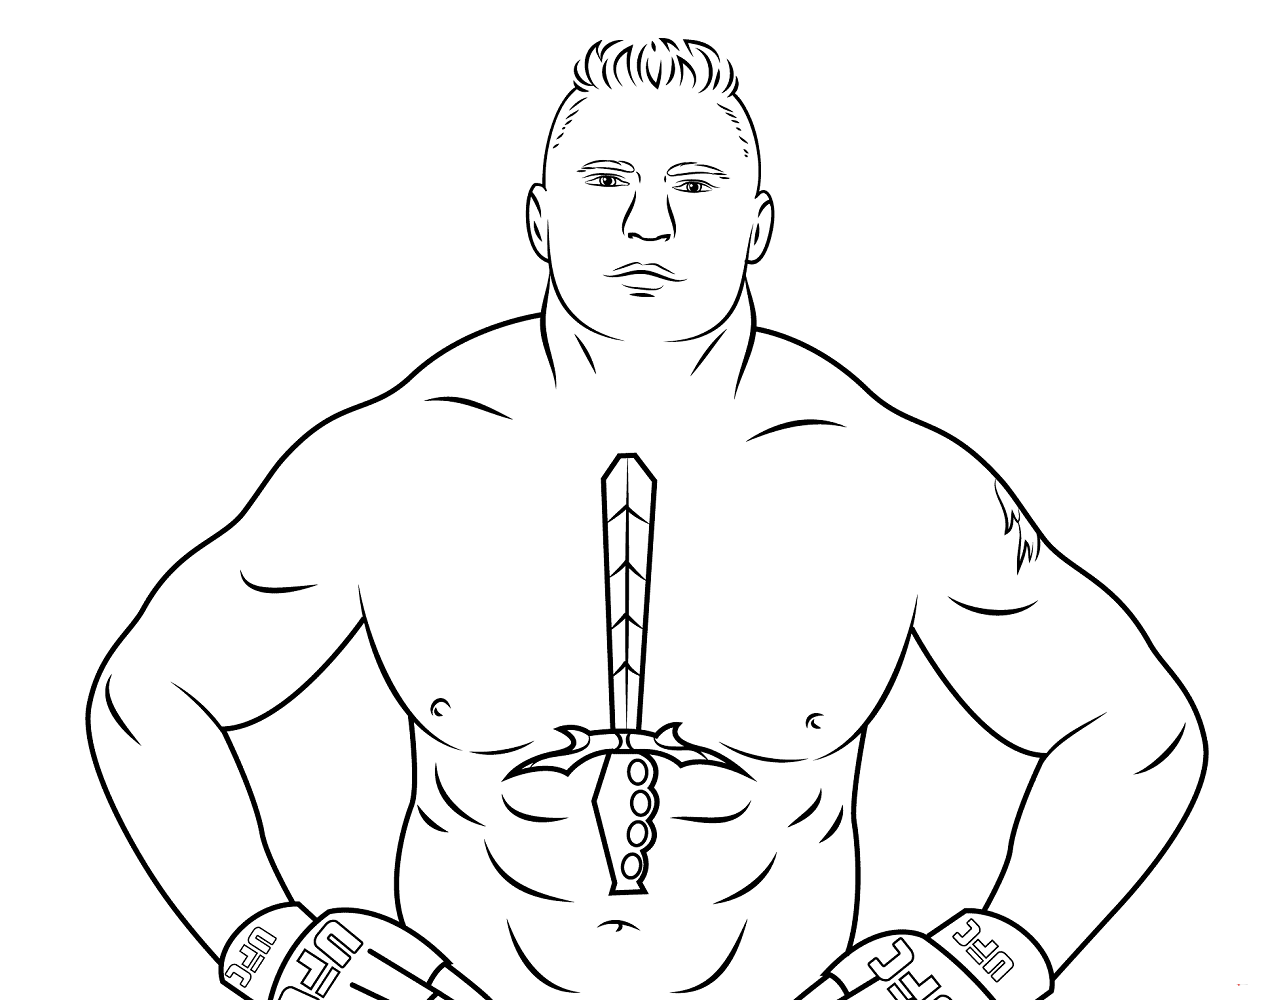 wwe color sheets you should experience wwe coloring pages printable at wwe color sheets